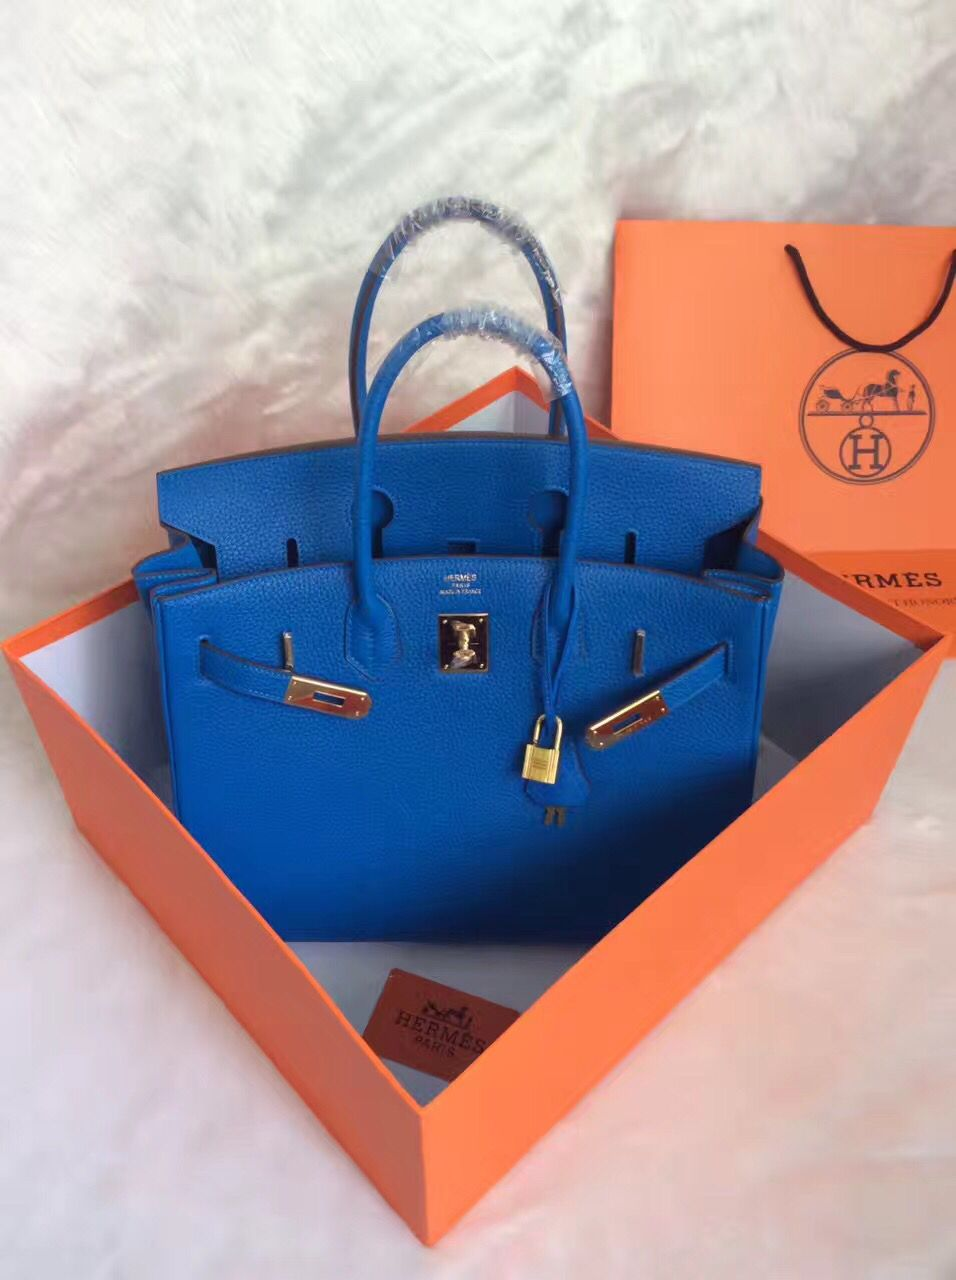 Hermes Birkin 30CM Tote Bag Blue Original Leather HB30 Glod